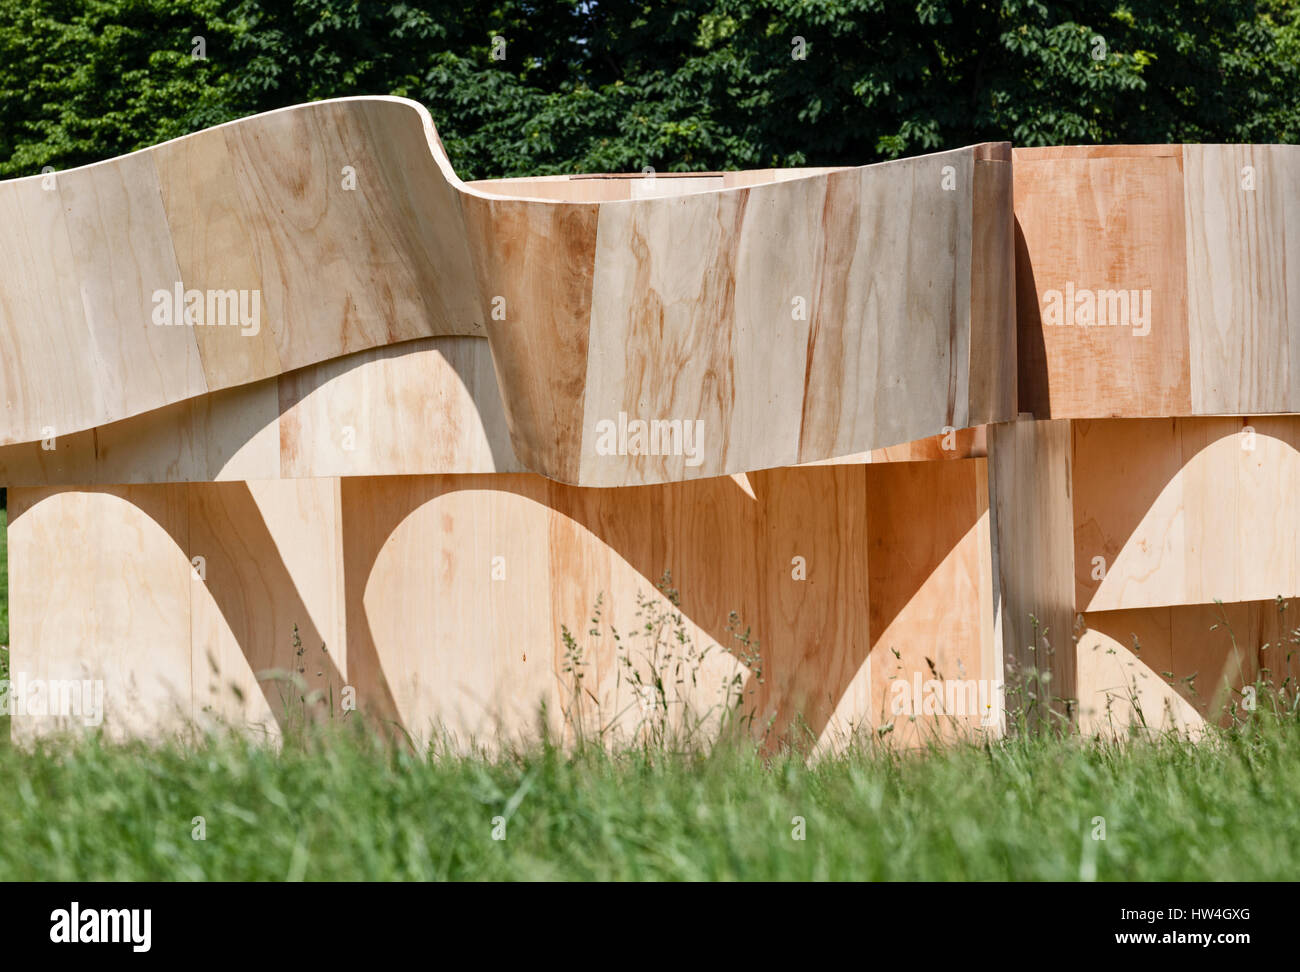 serpentine summer house 2016 kensington gardens london uk exterior view of curved plywood structure